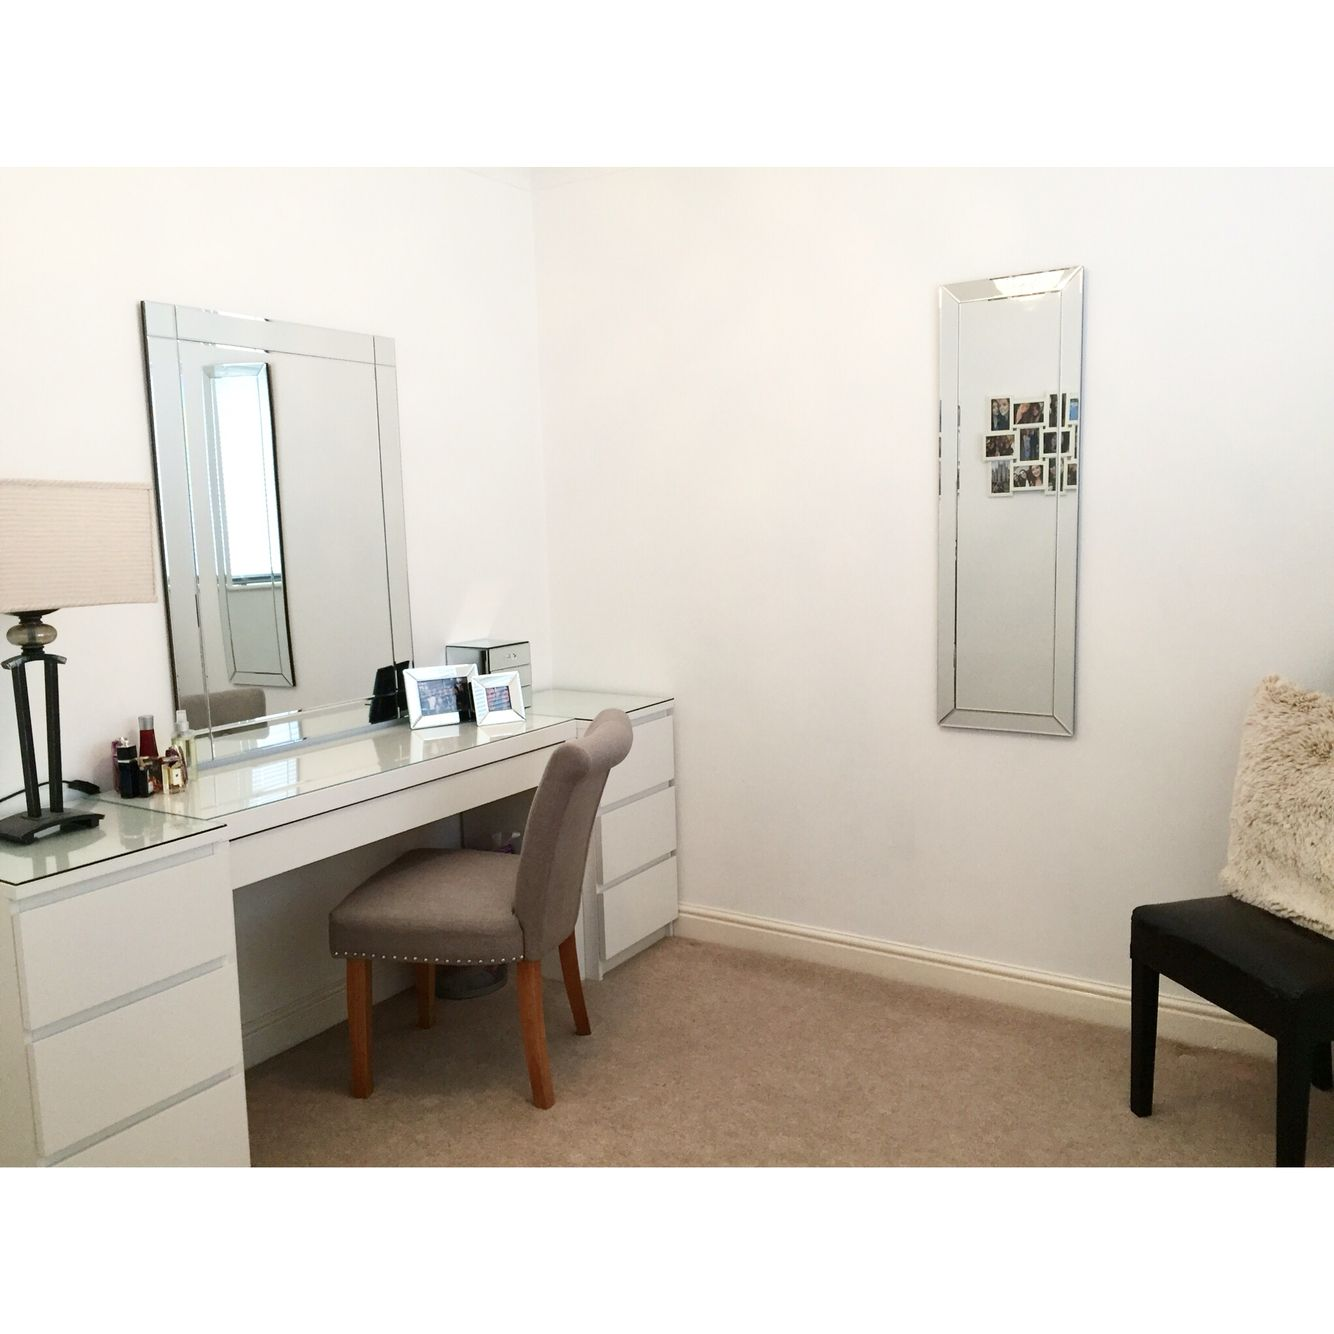 My dressing room at home. IKEA dressing table and draws